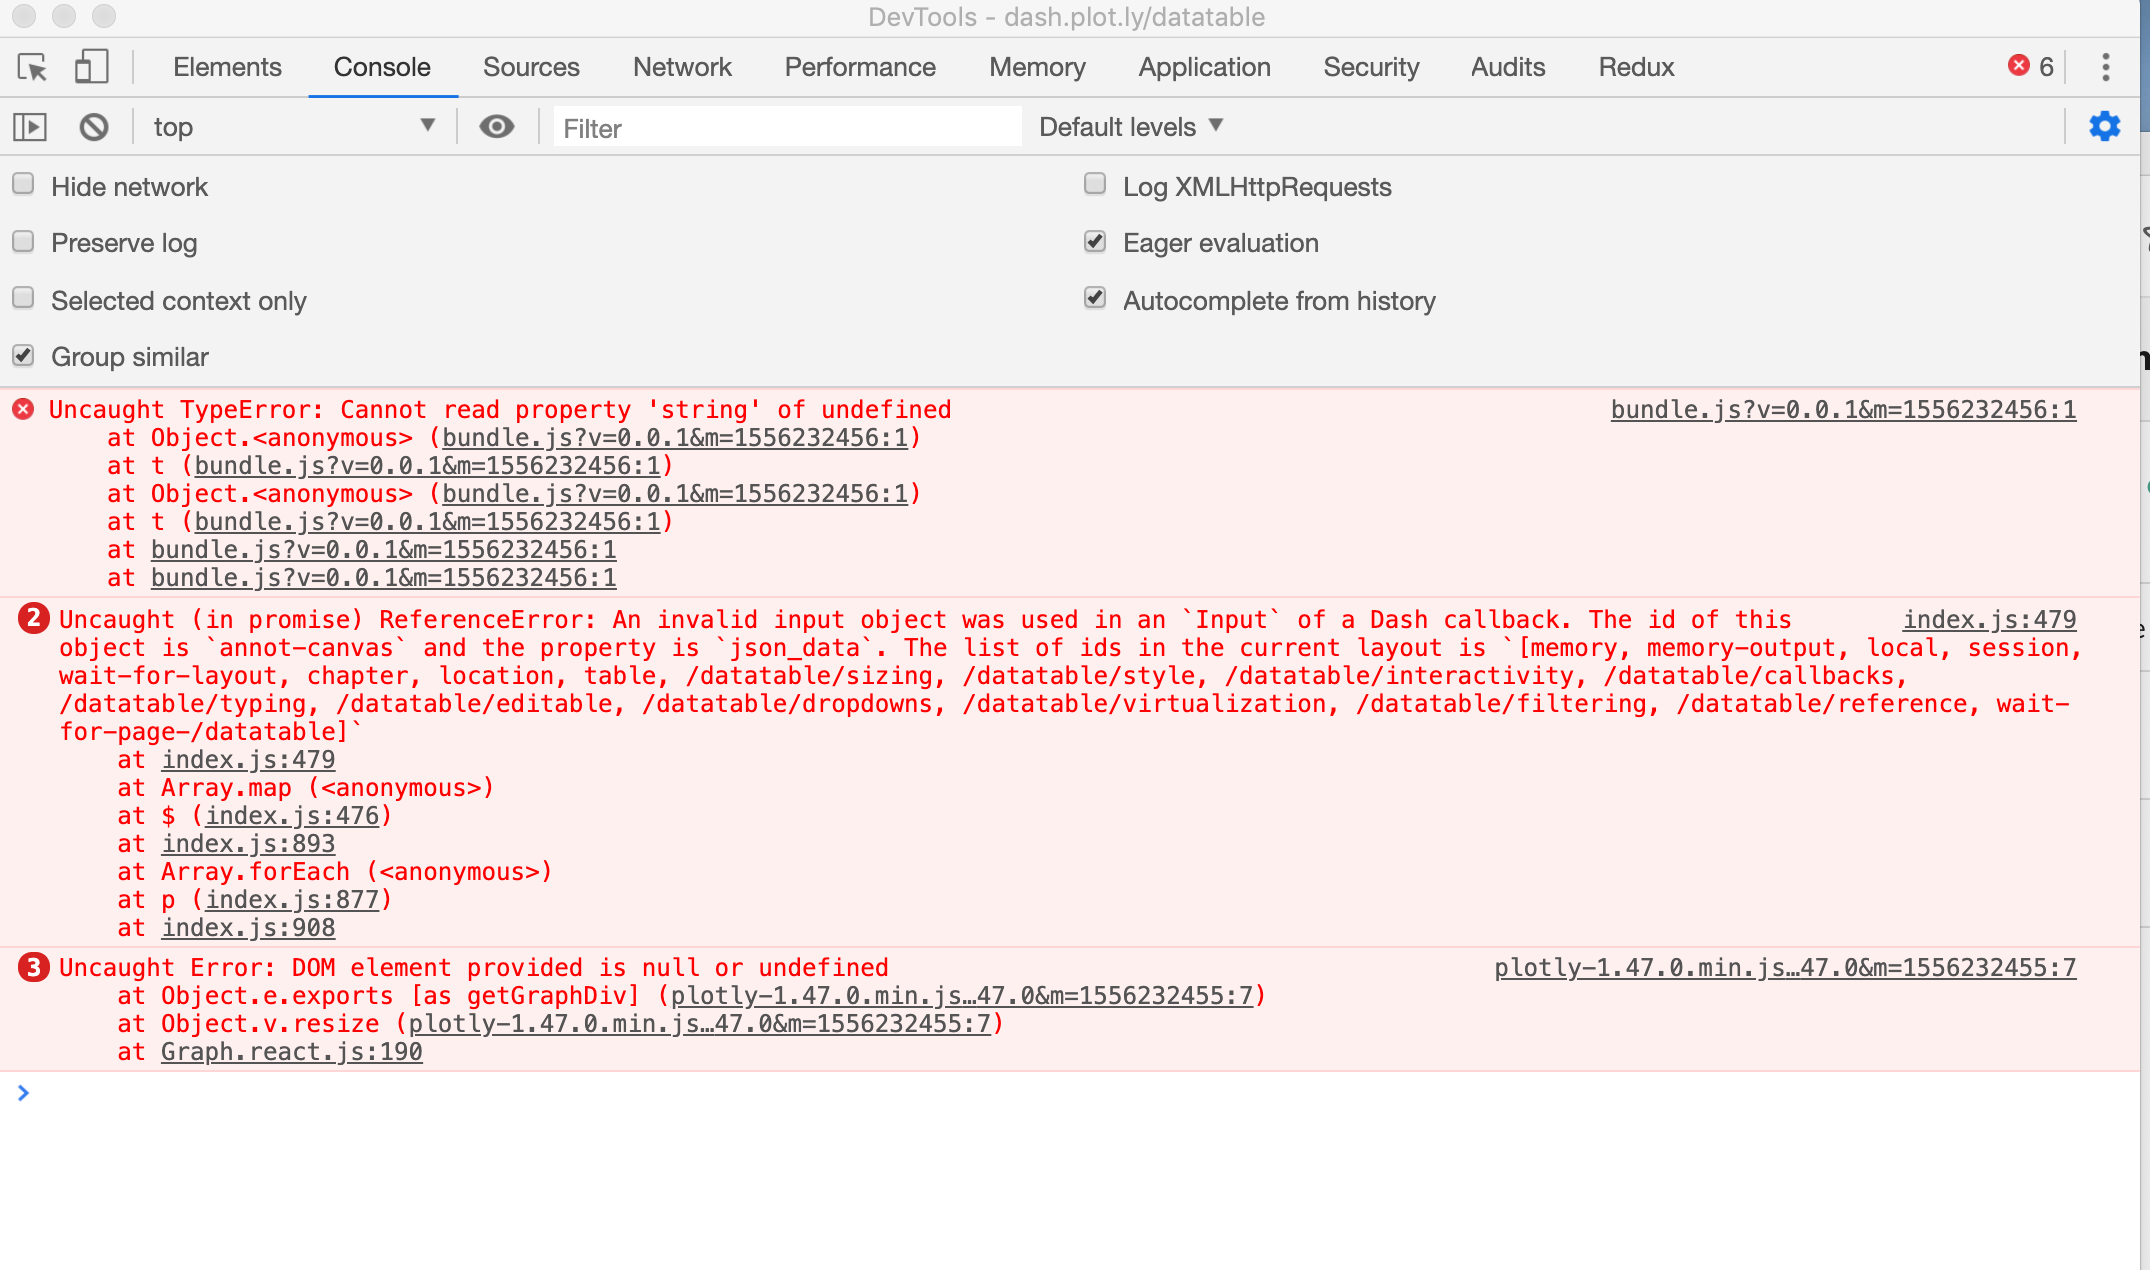 Console errors found on datatable page · Issue #481 · plotly